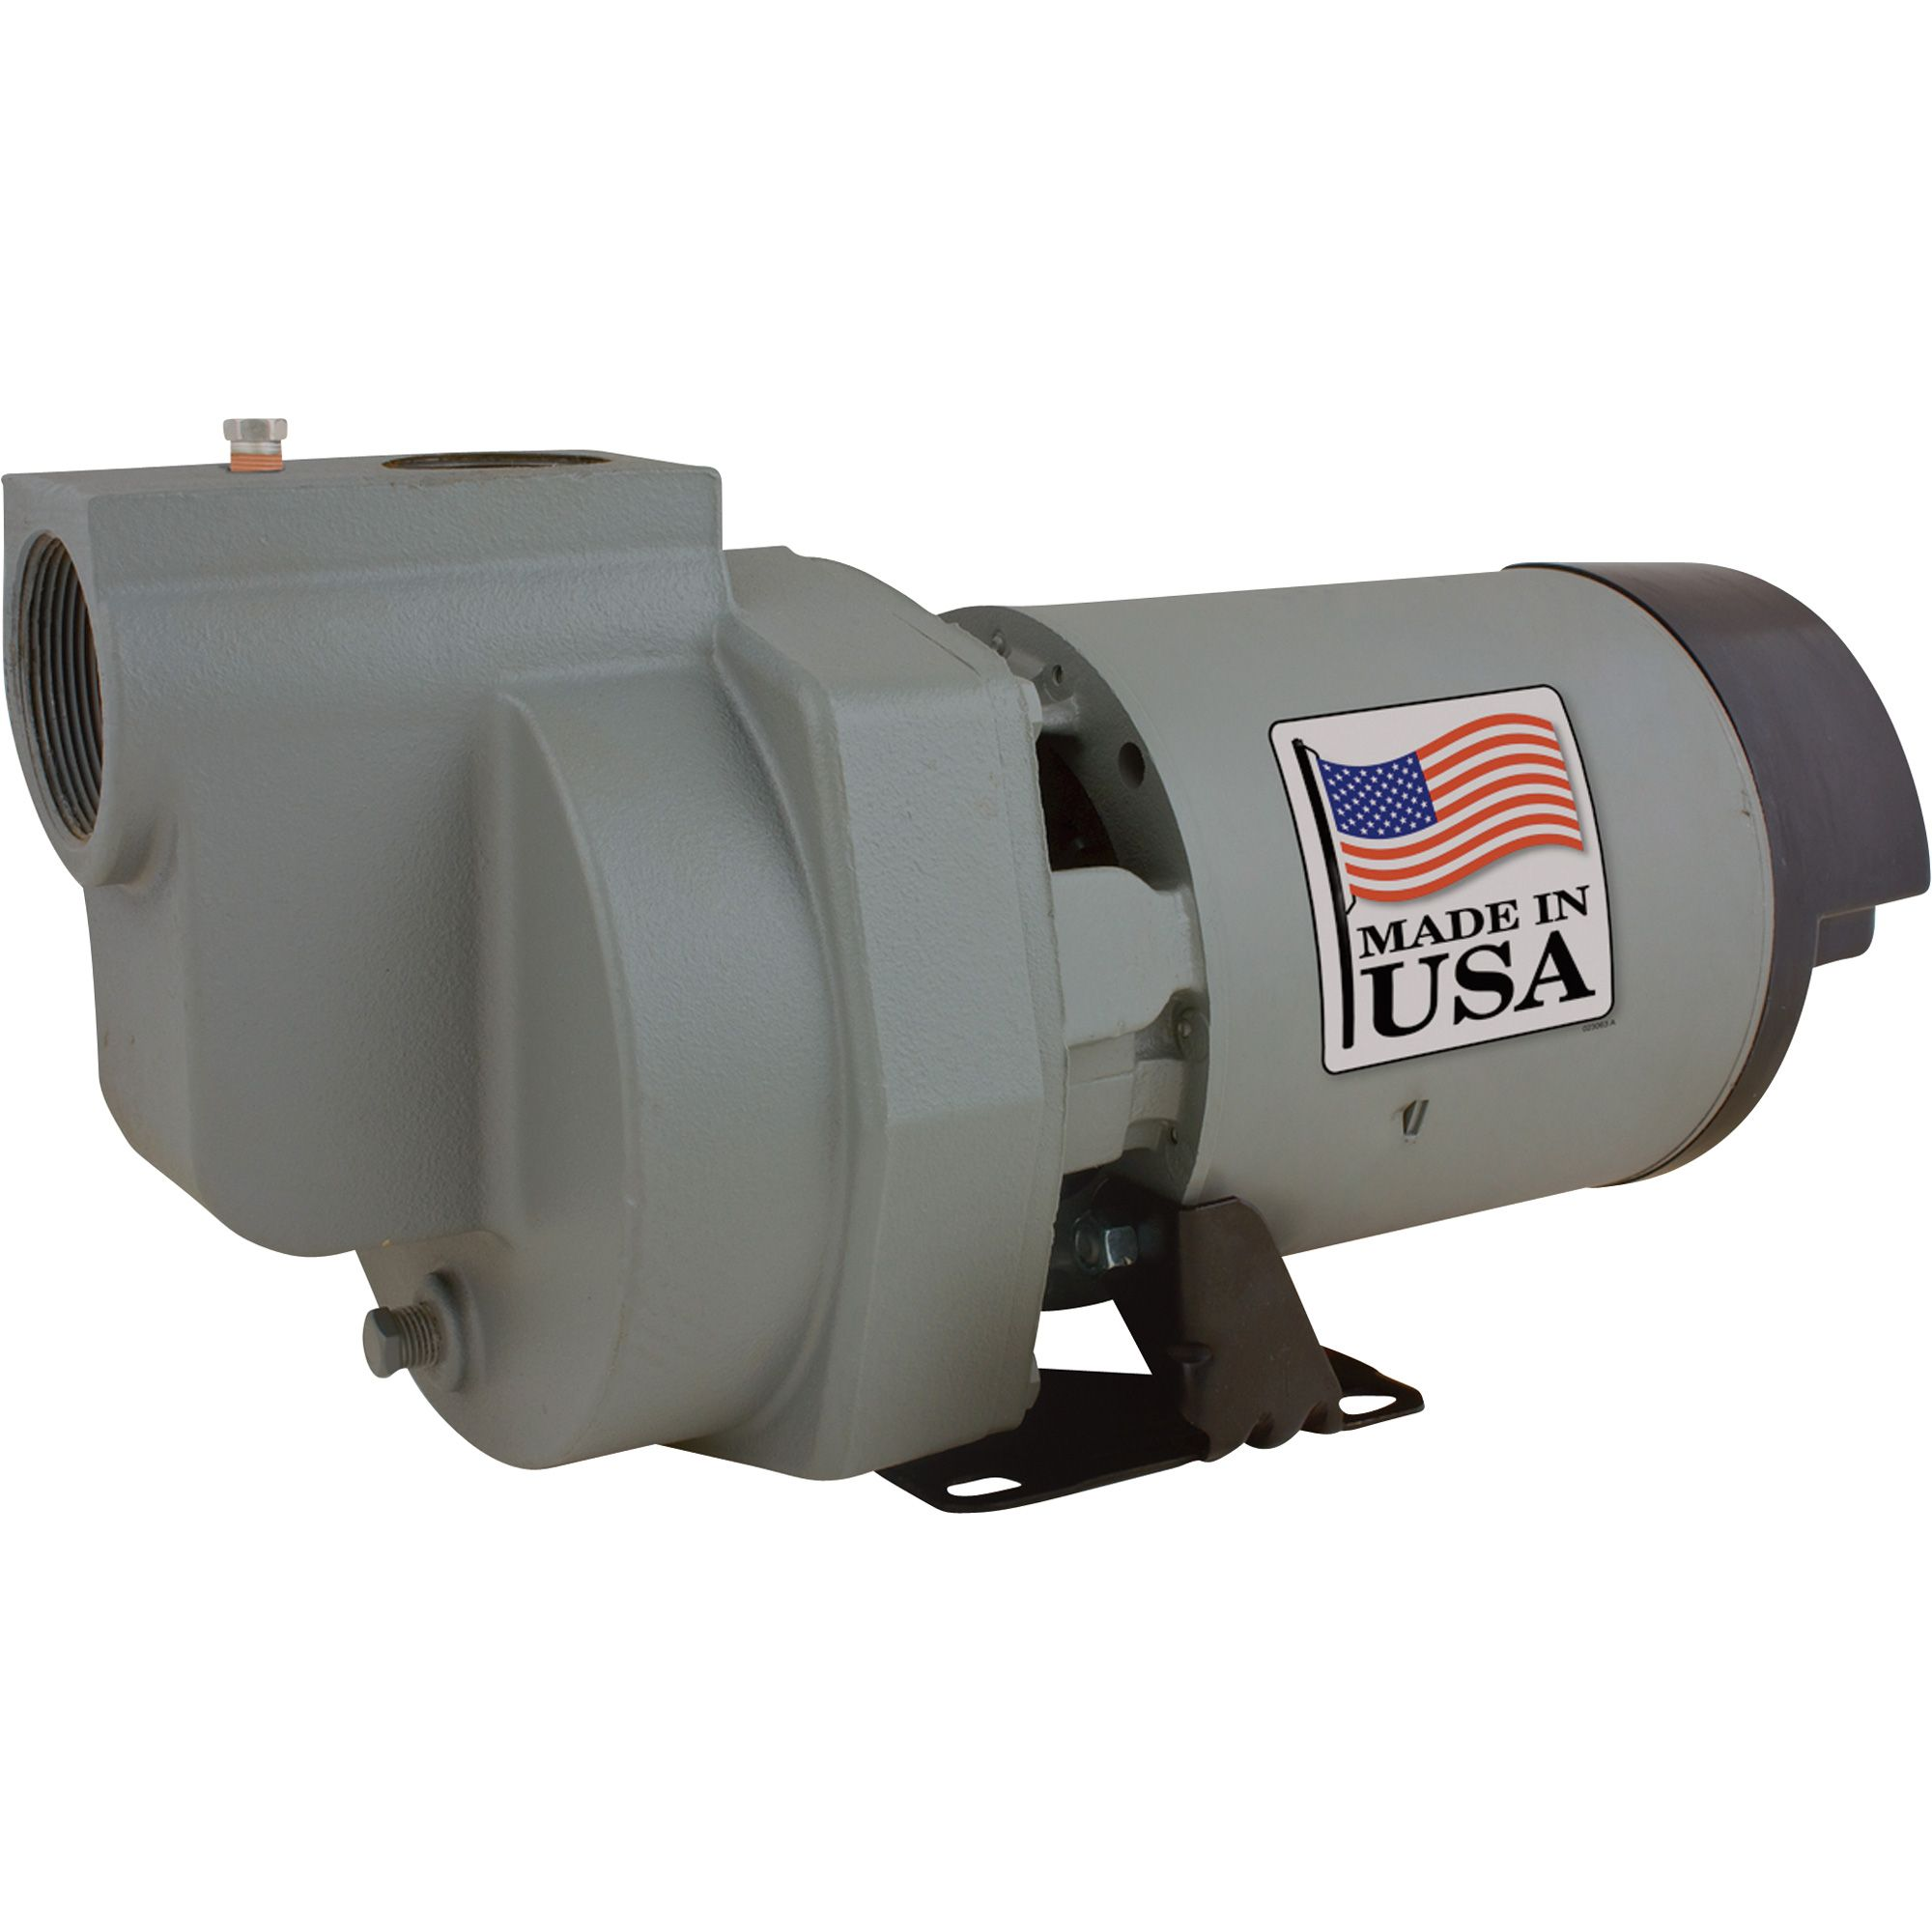 Star Water Systems SelfPriming Cast Iron Lawn Sprinkler